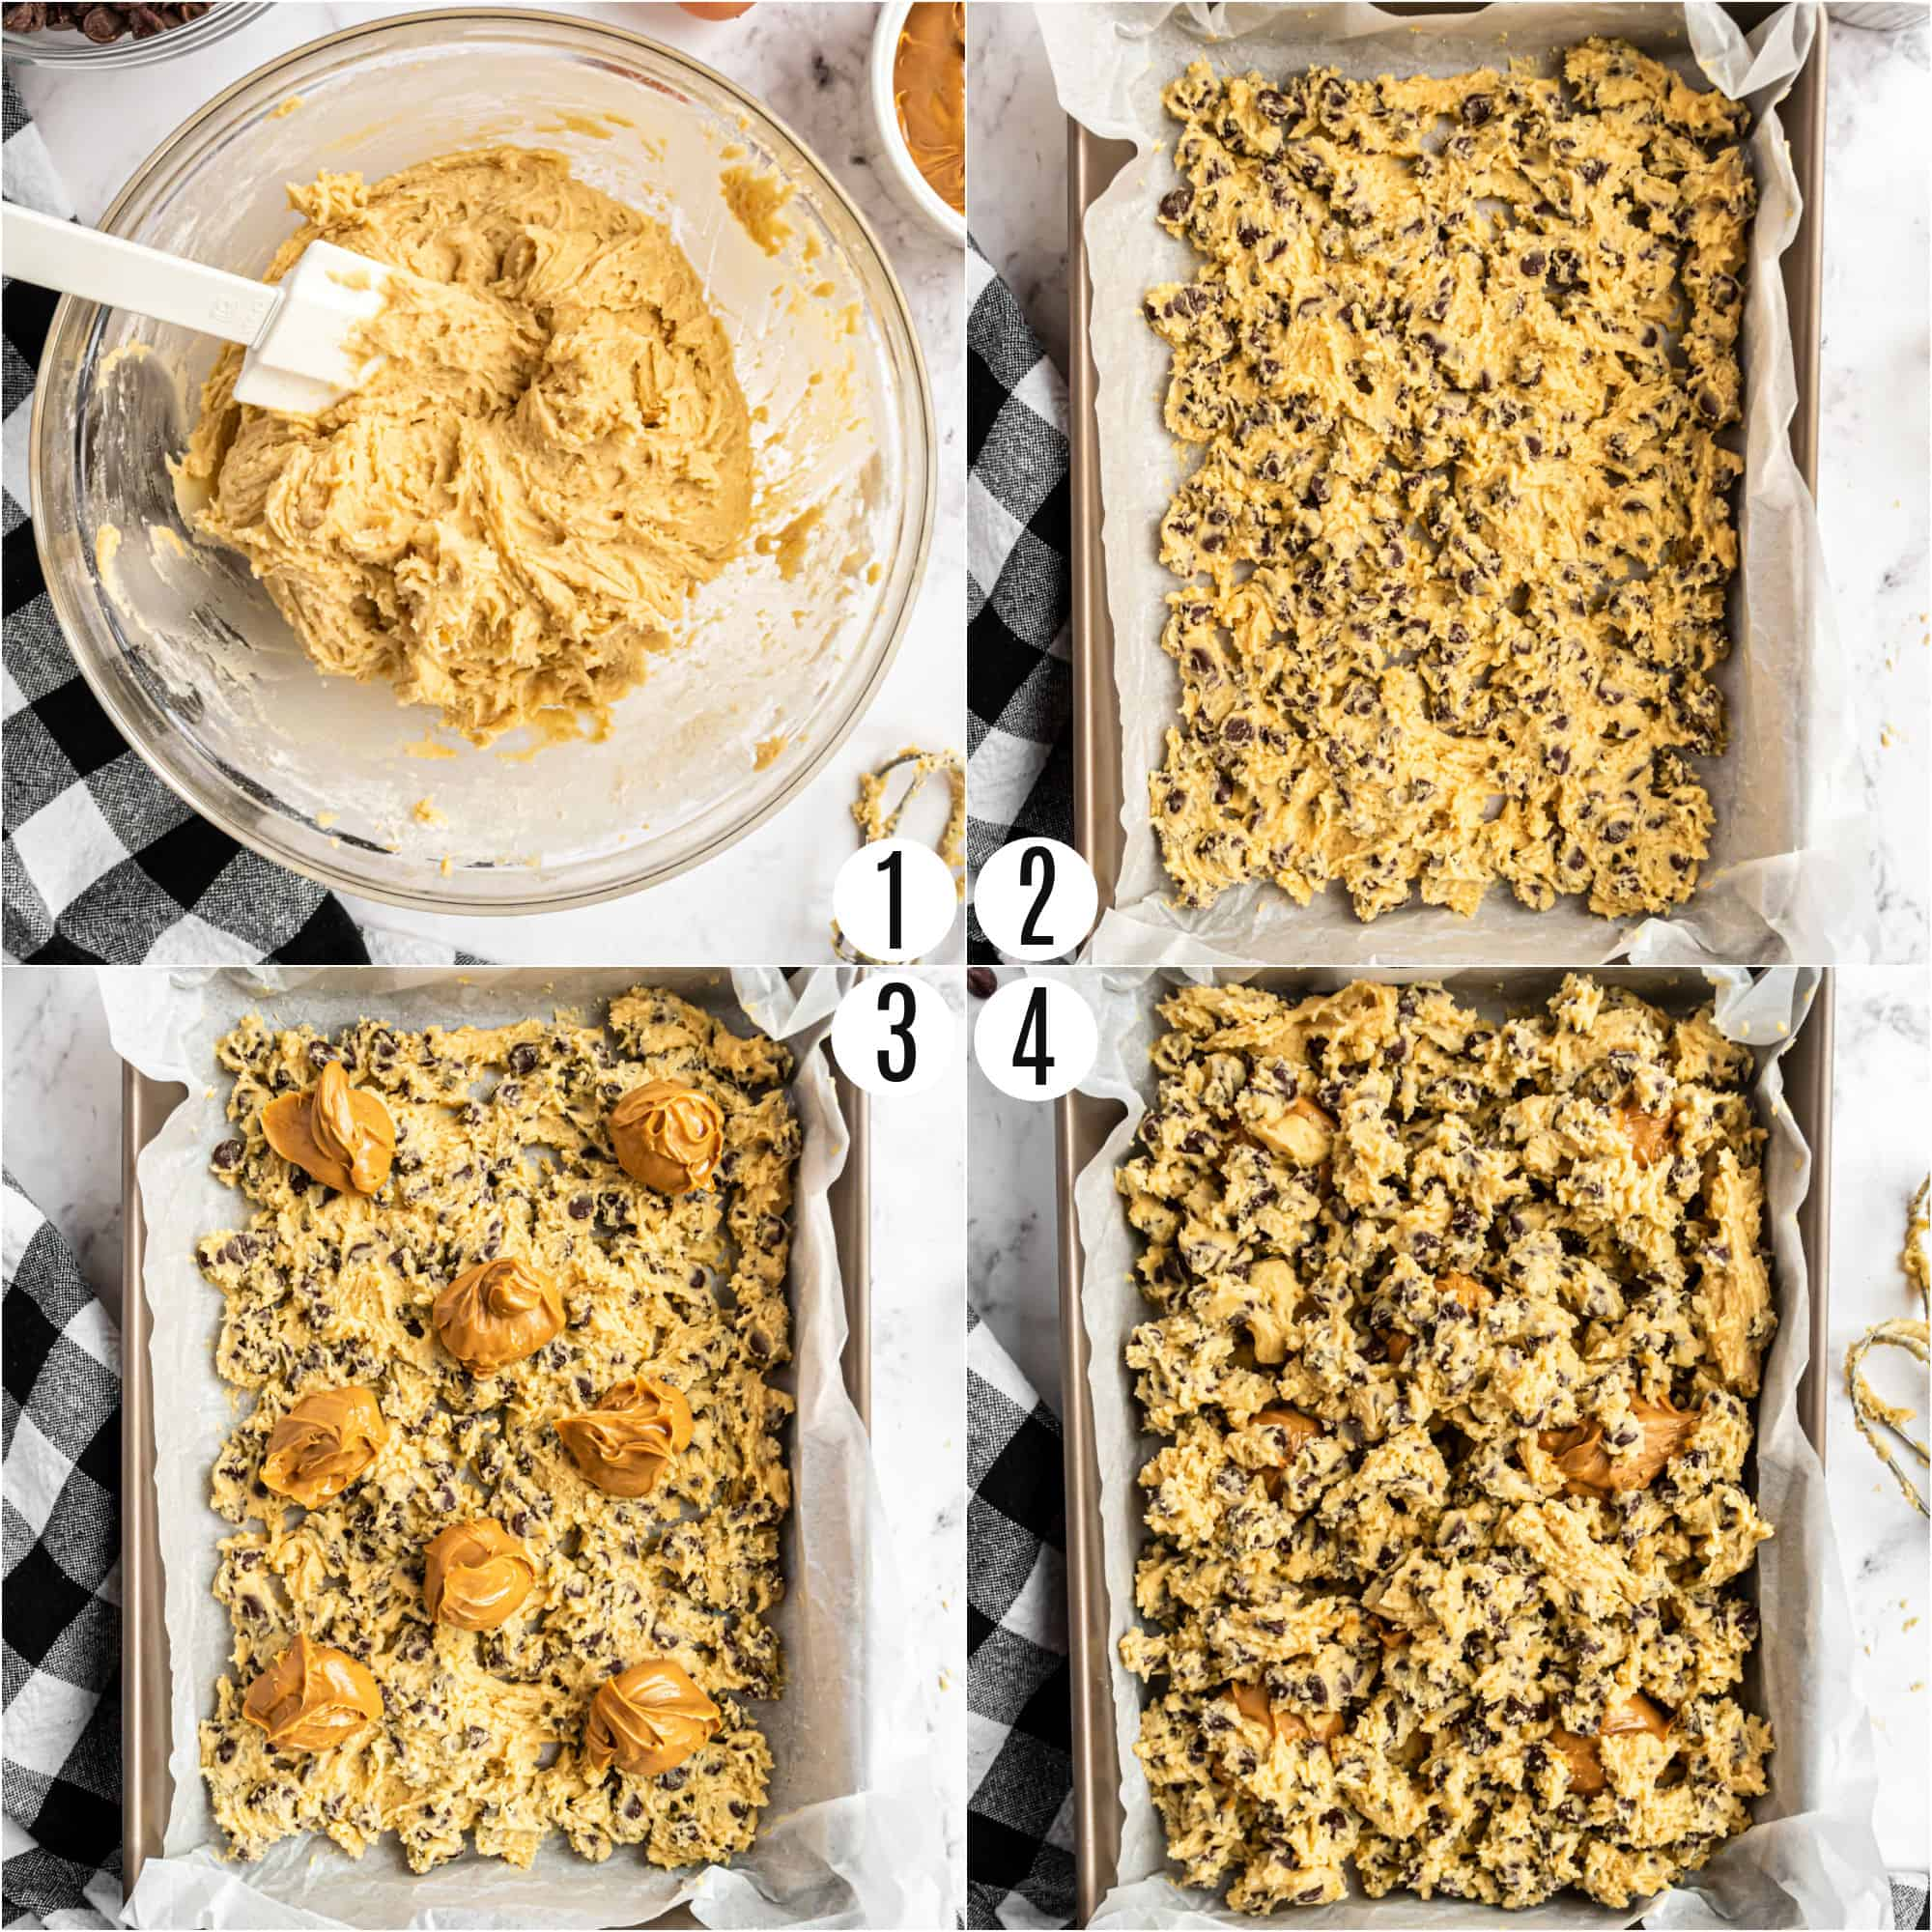 Step by step photos showing how to make peanut butter swirled chocolate chip cookie bars.